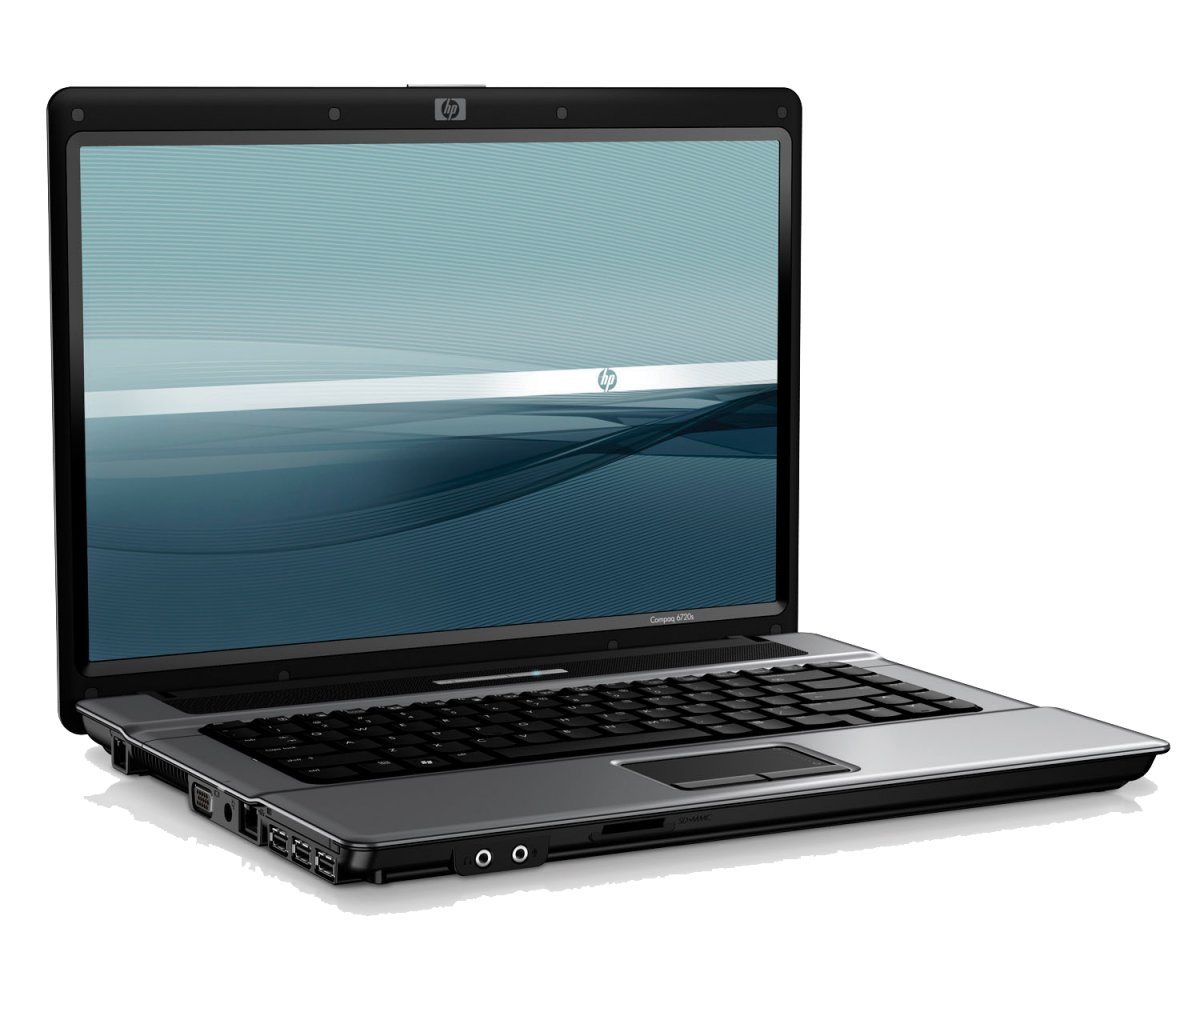 Laptop notebook PNG image image with transparent background 15